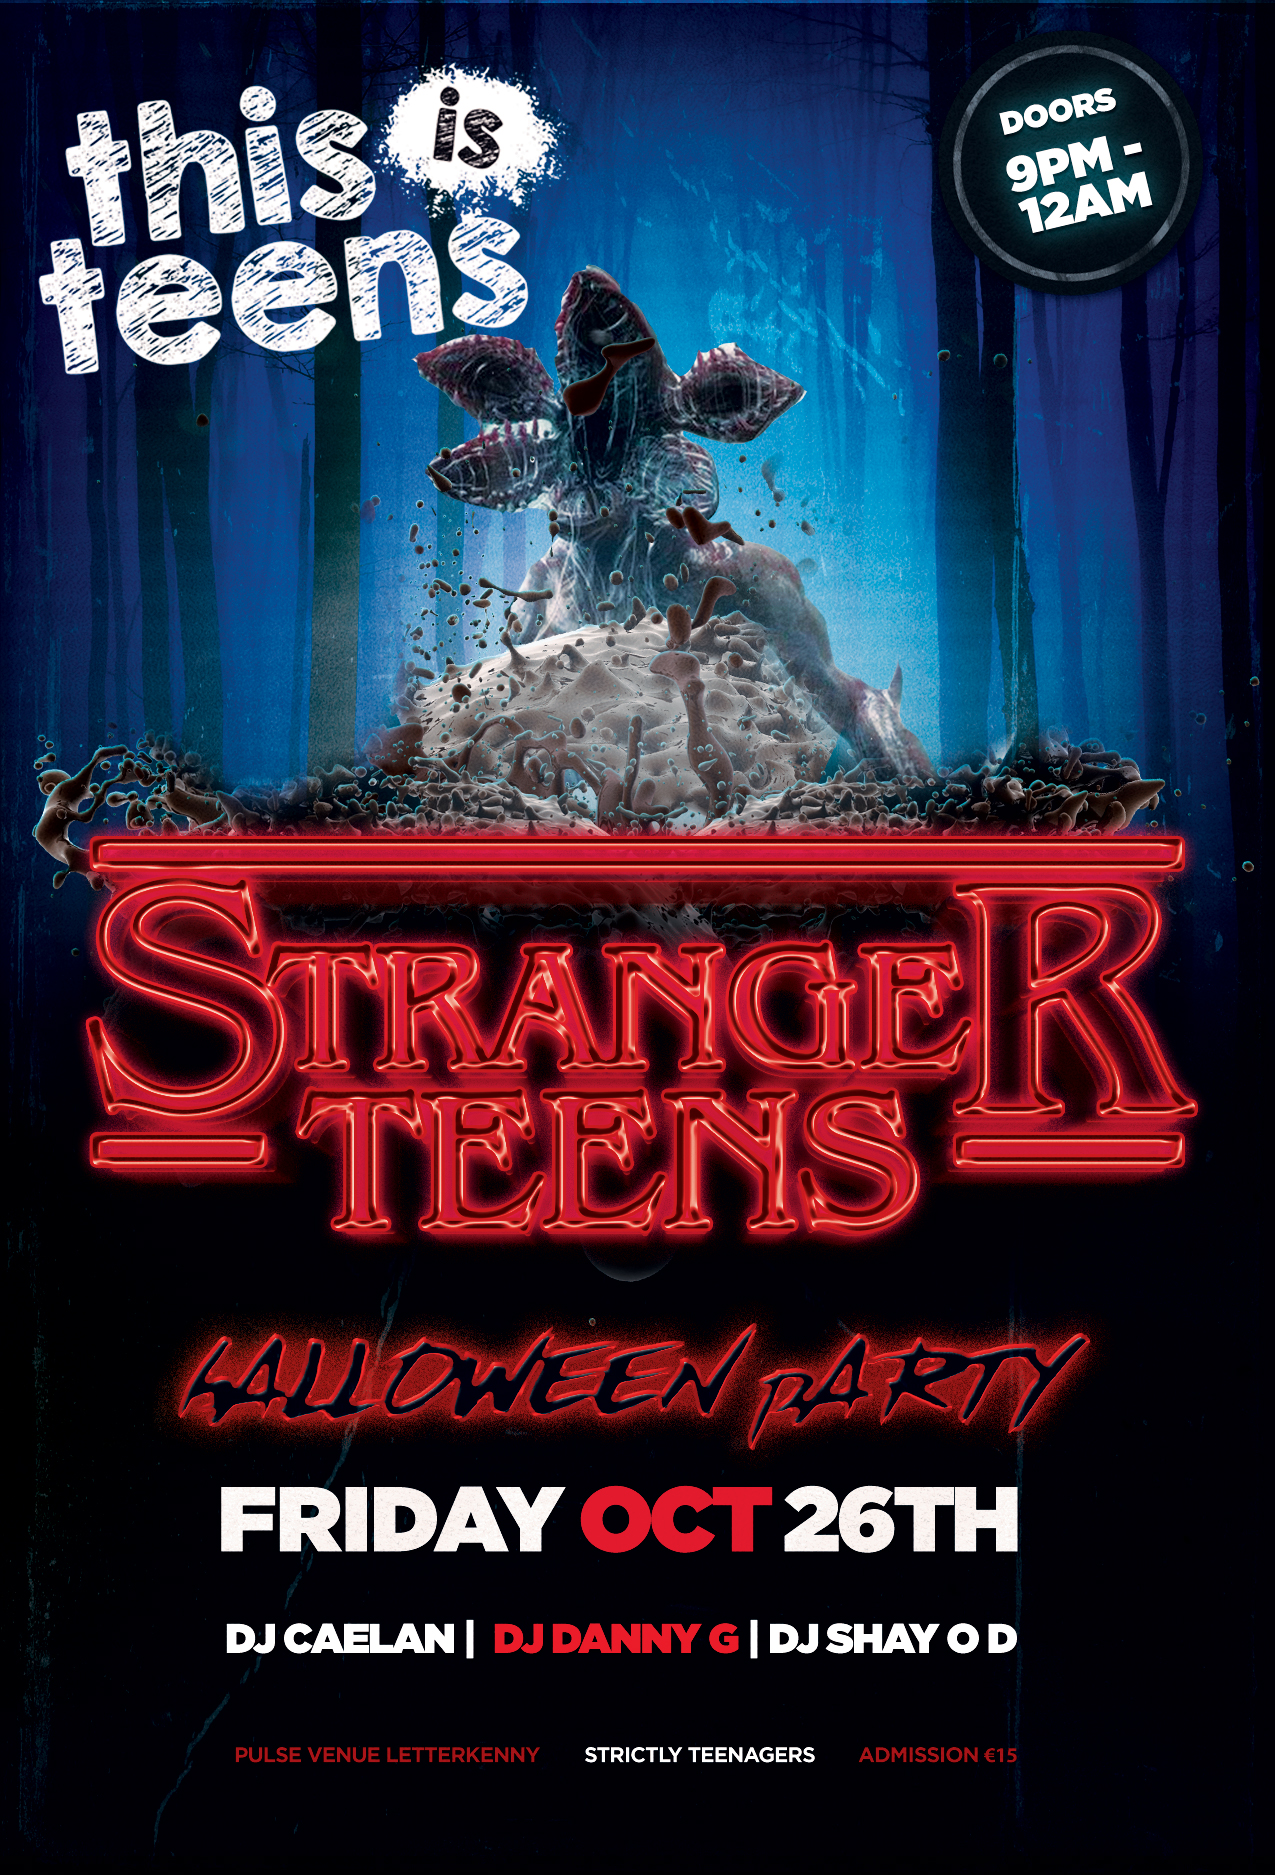 this-is-teens---stranger-teens---fri-oct-26-2018.jpg